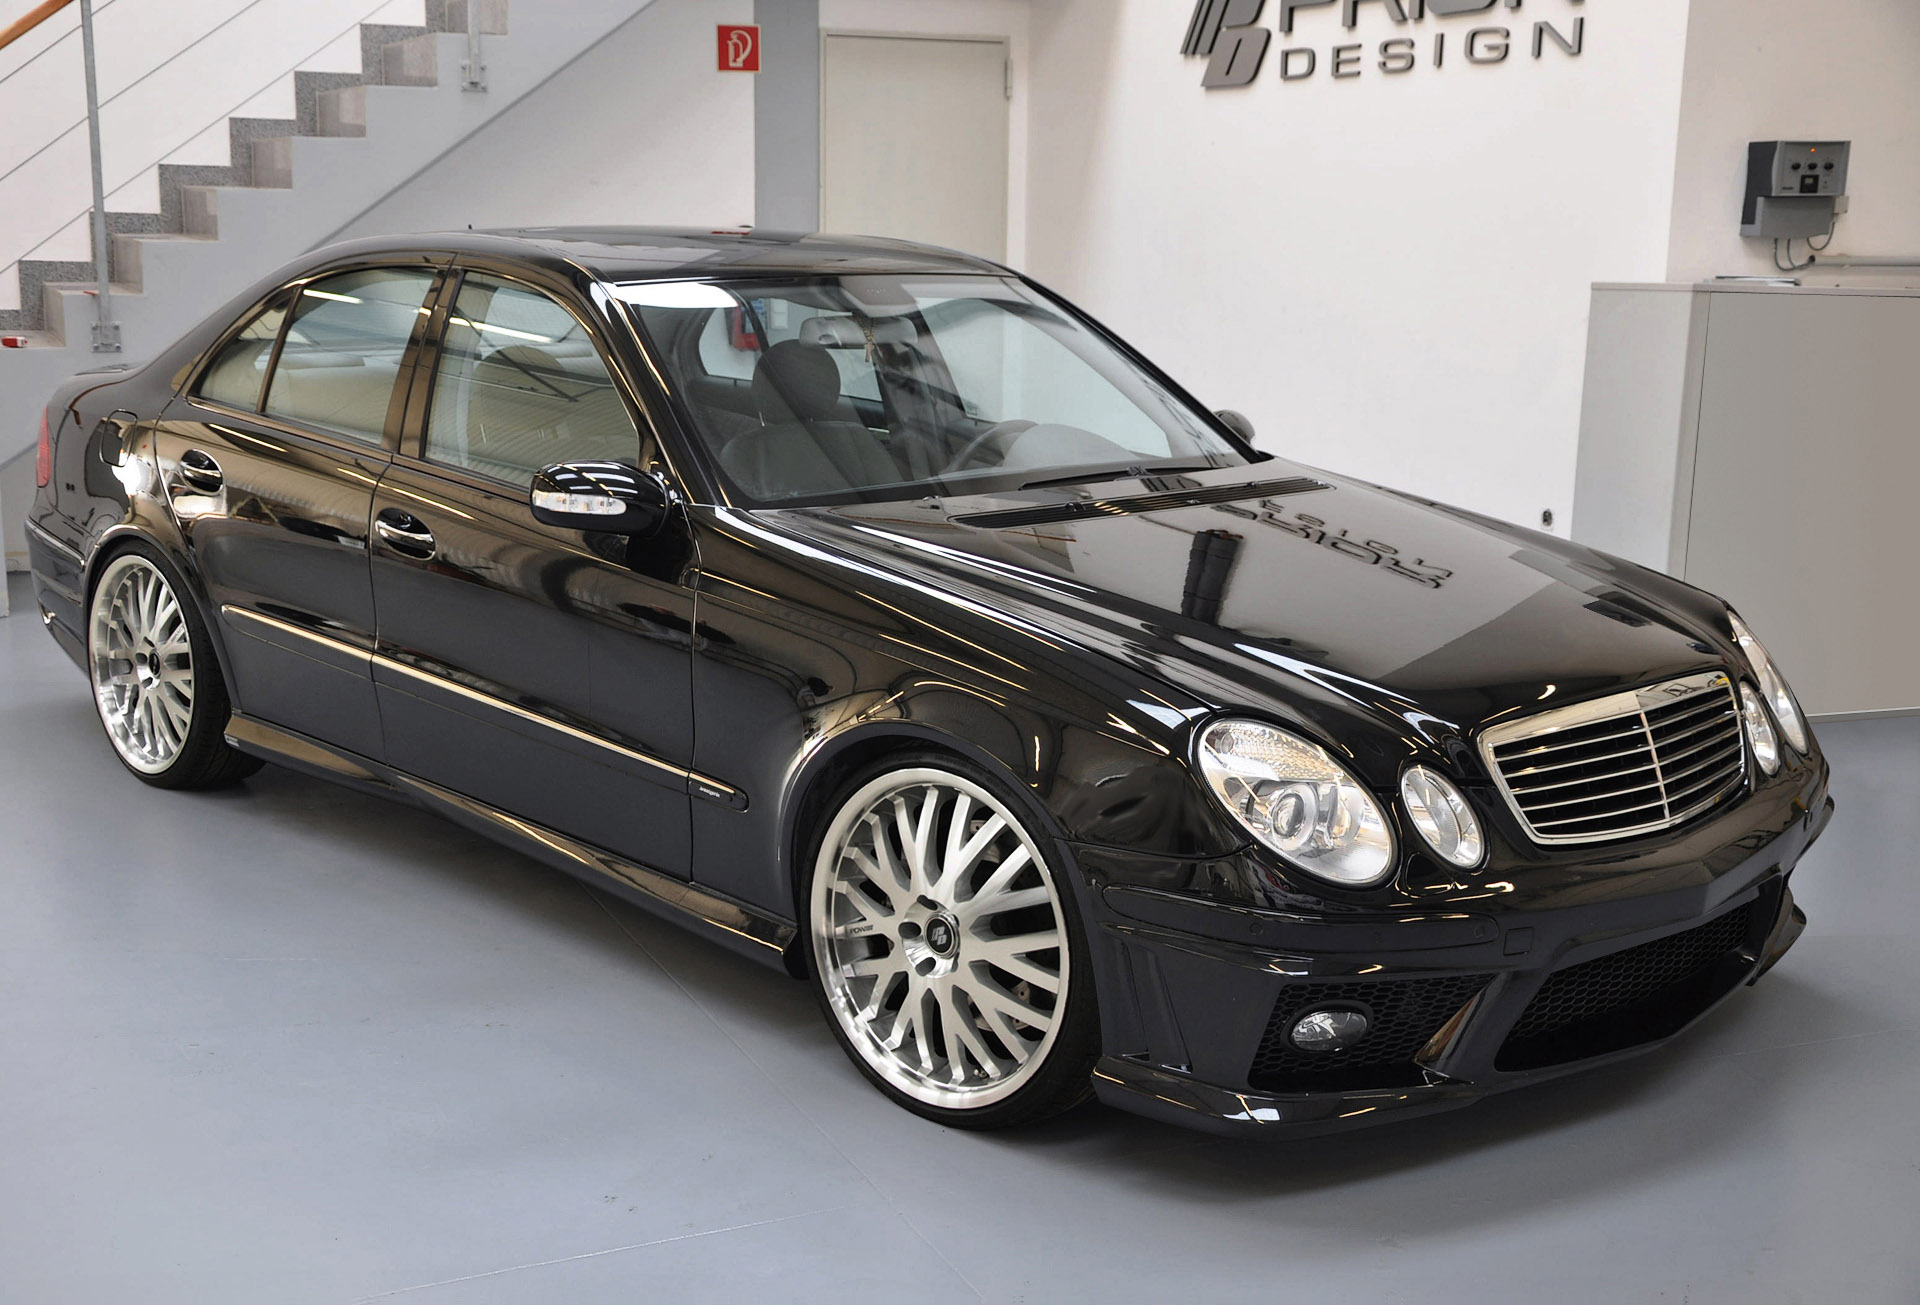 Mercedes Benz E Class W211 Is Back With Prior Styling